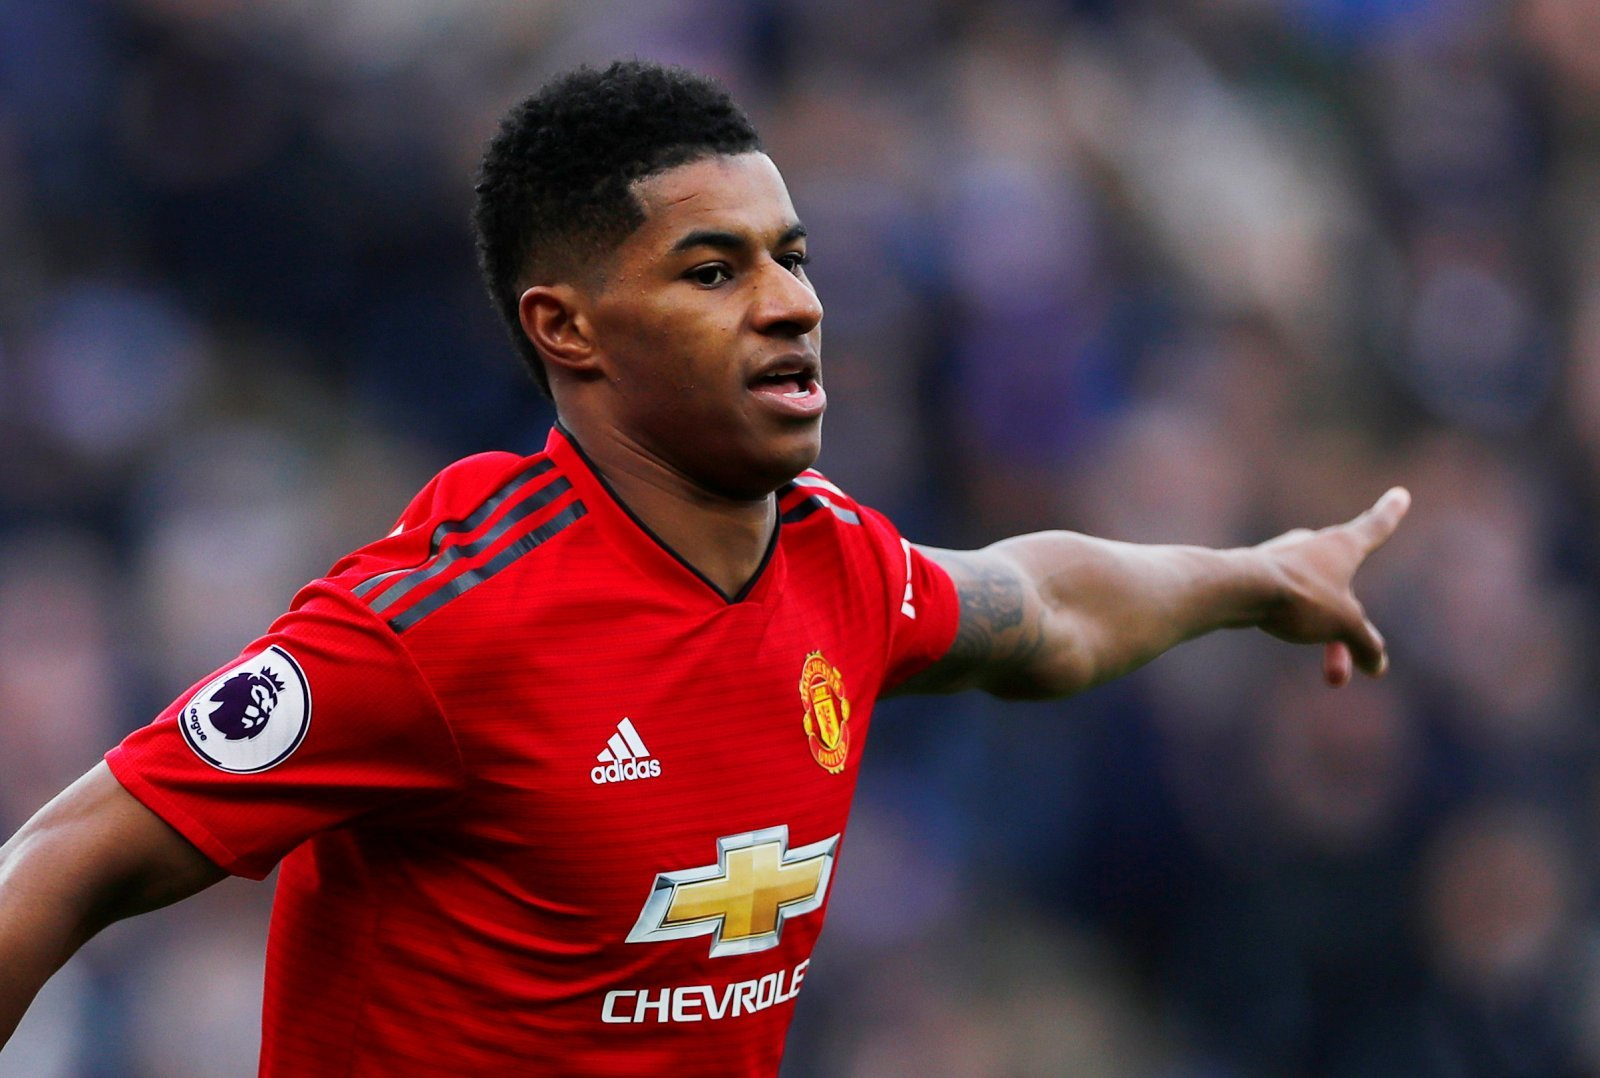 Gary Neville: I think Rashford will sign, that's not in doubt